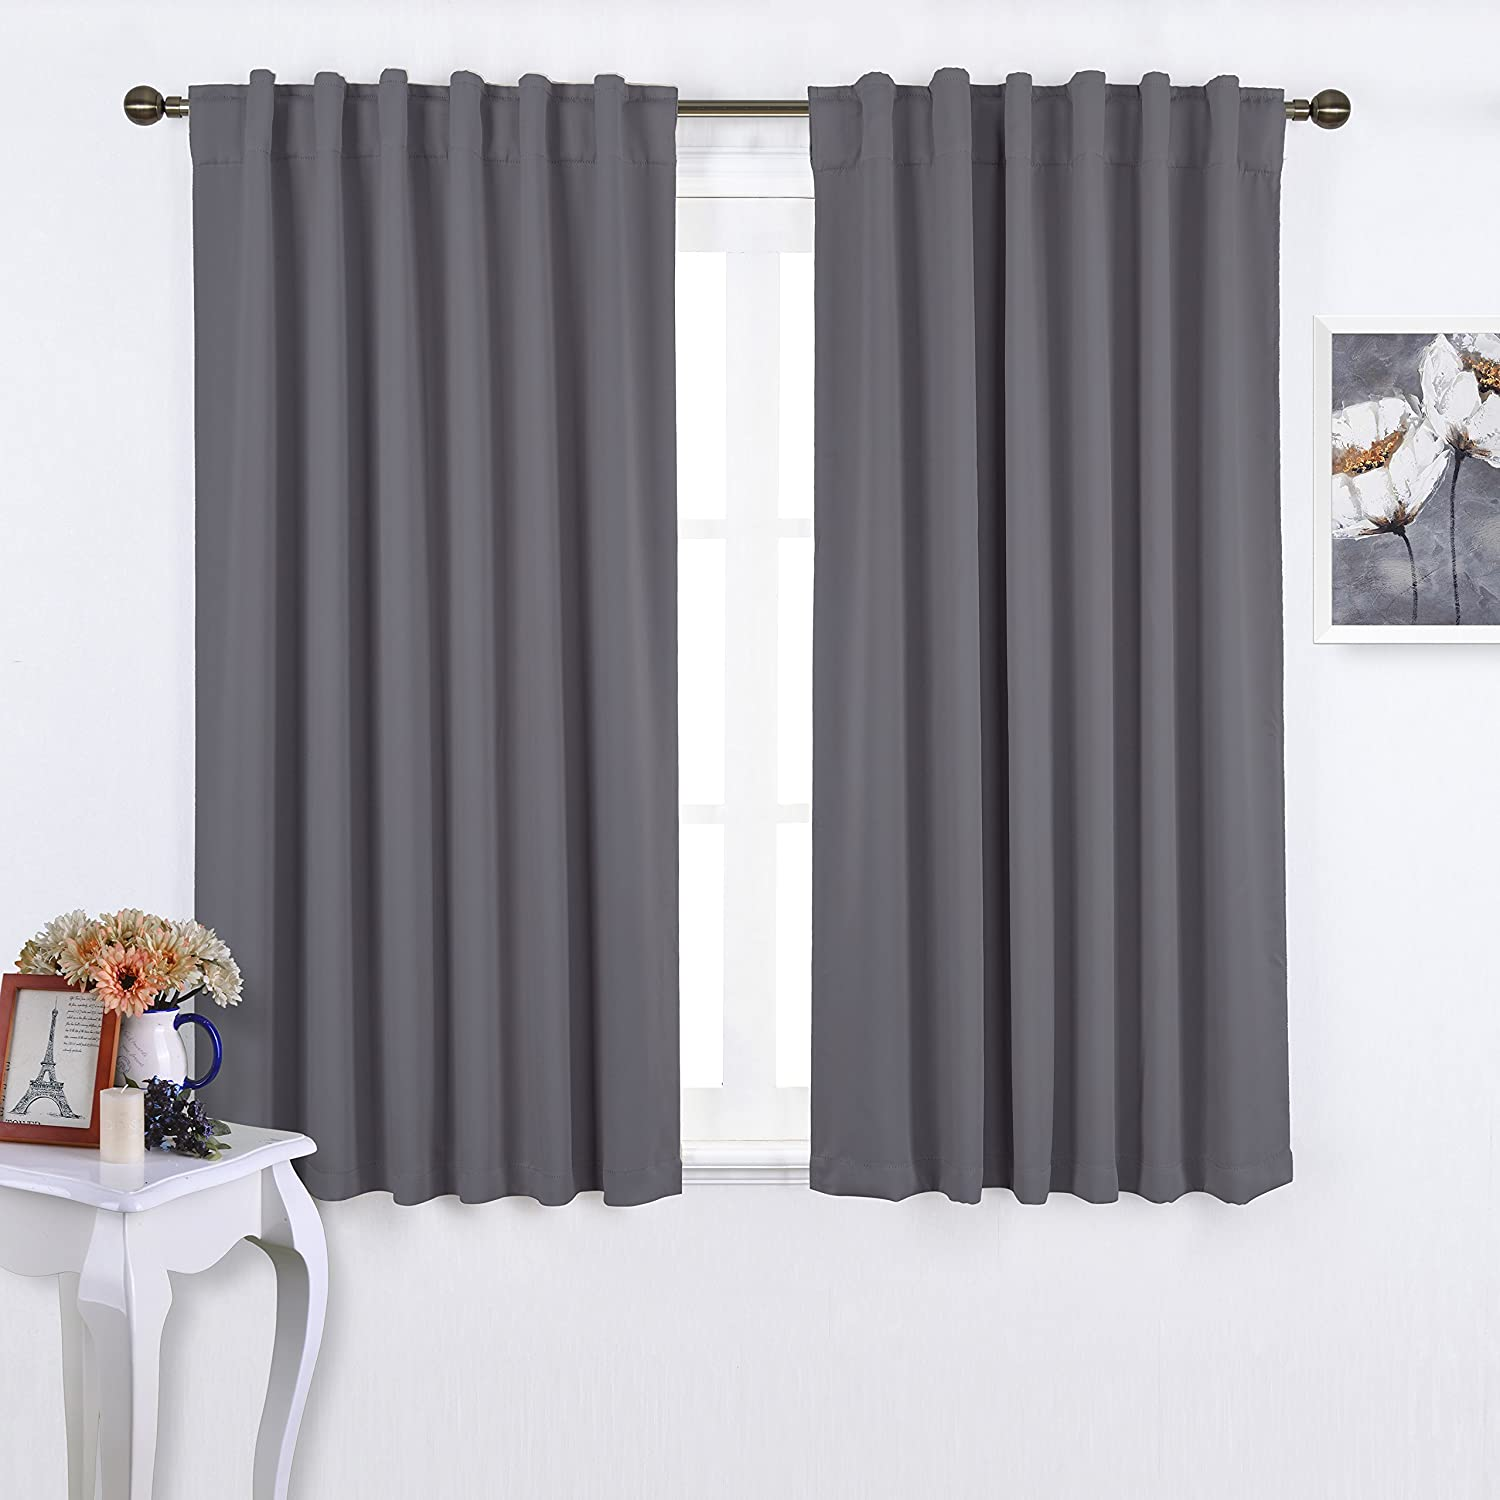 pocket out curtains blue black unique santa floral curtain of bedroom room gray shower panels thermal amazon brilliant com grey and blackout elegant marvelous size darkening solid deconovo rod light really full bemalas for print thick shades nature bluegrey nicetown kitchen white